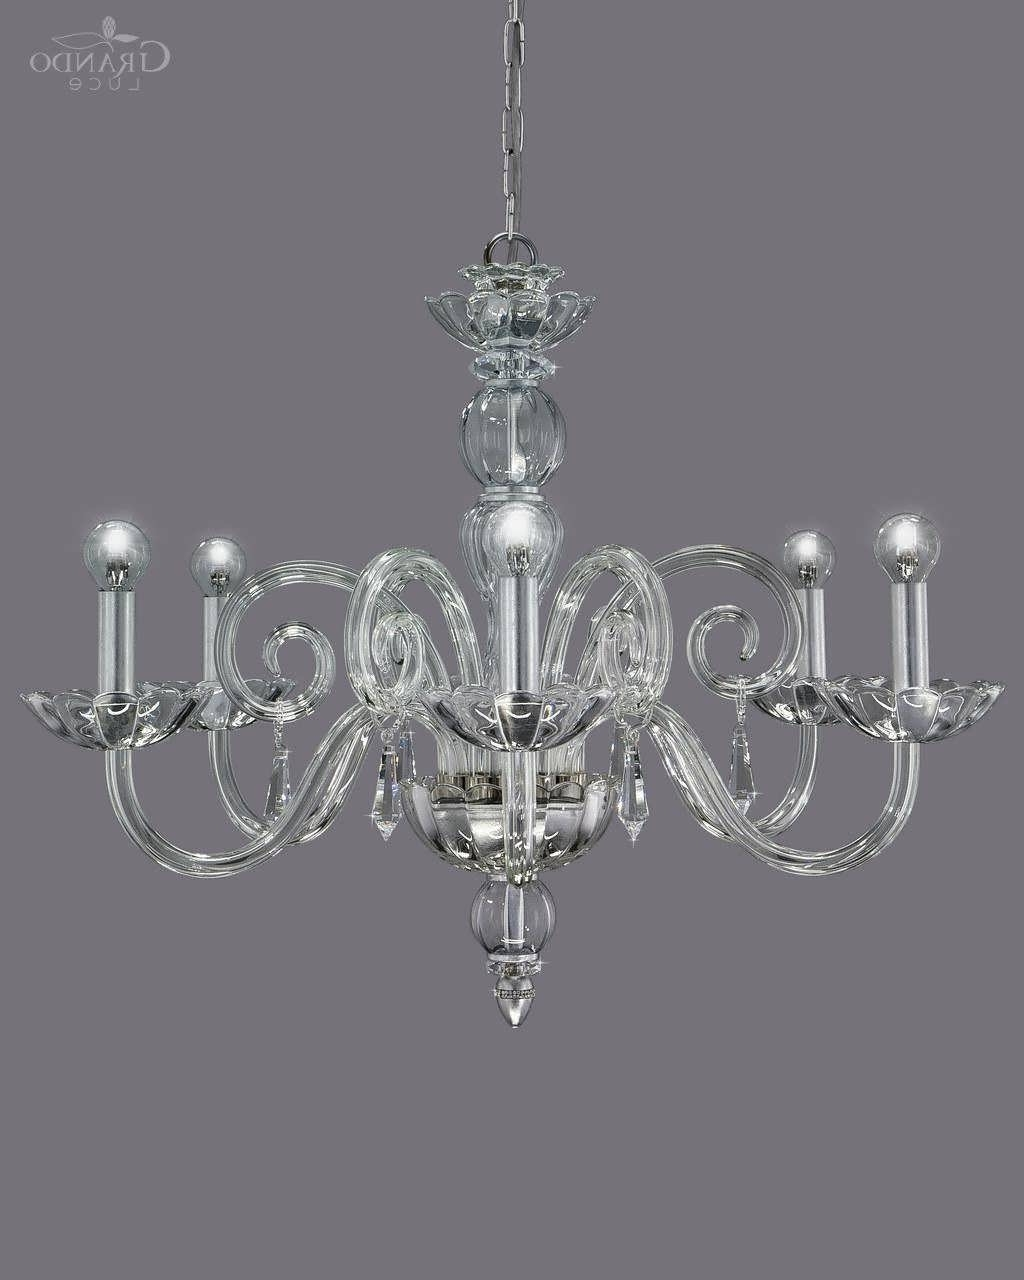 Chandelier : Small Chandeliers Small White Chandelier Candle Pertaining To Well Liked Short Chandeliers (View 5 of 20)